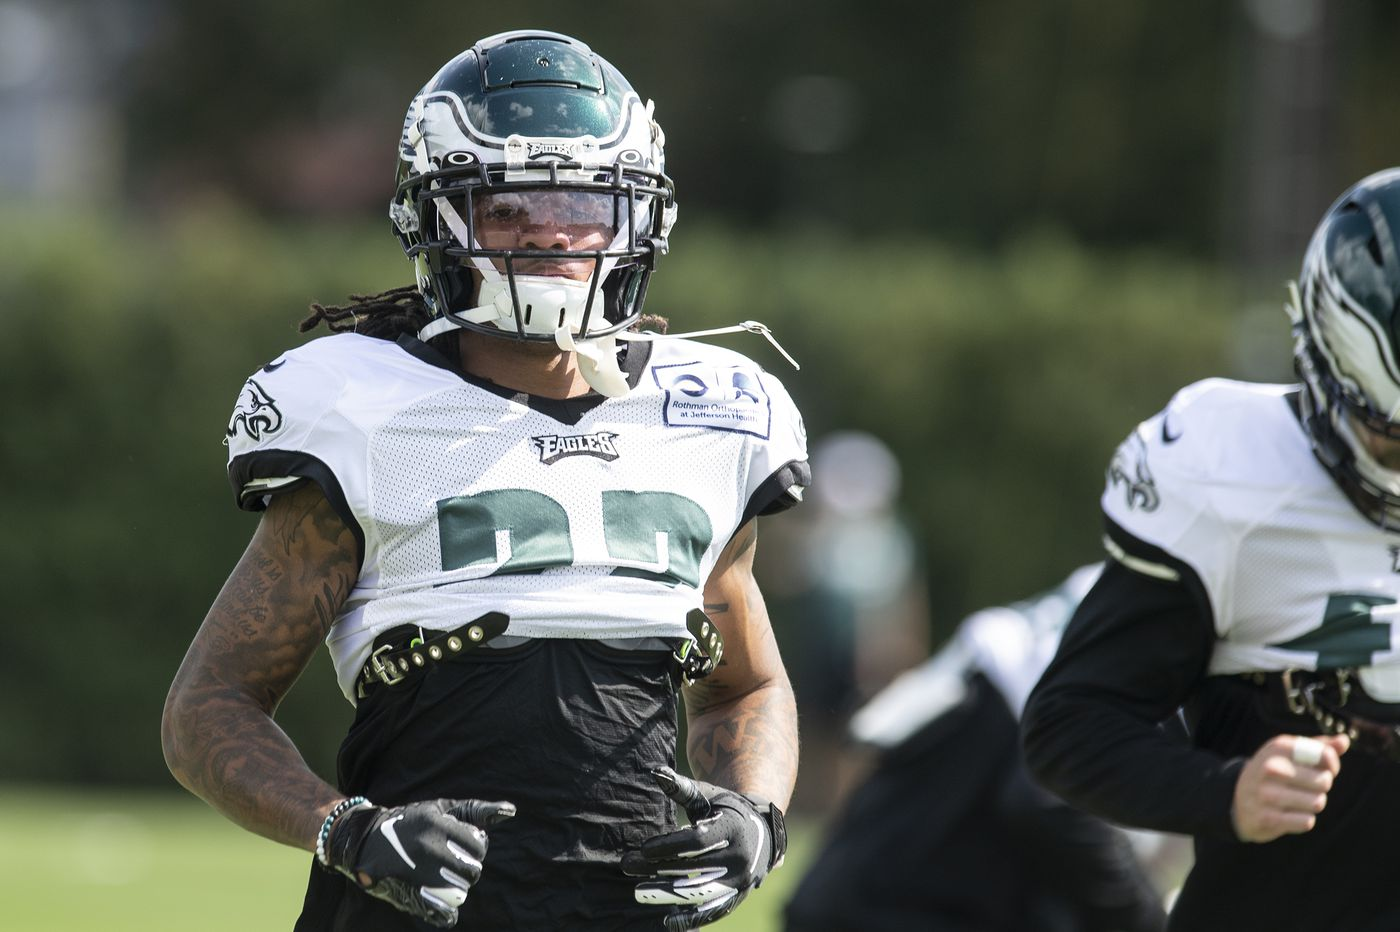 Eagles podcast: Preview of Week 5 Jets game, a look at Sidney Jones, and where's the pass rush?